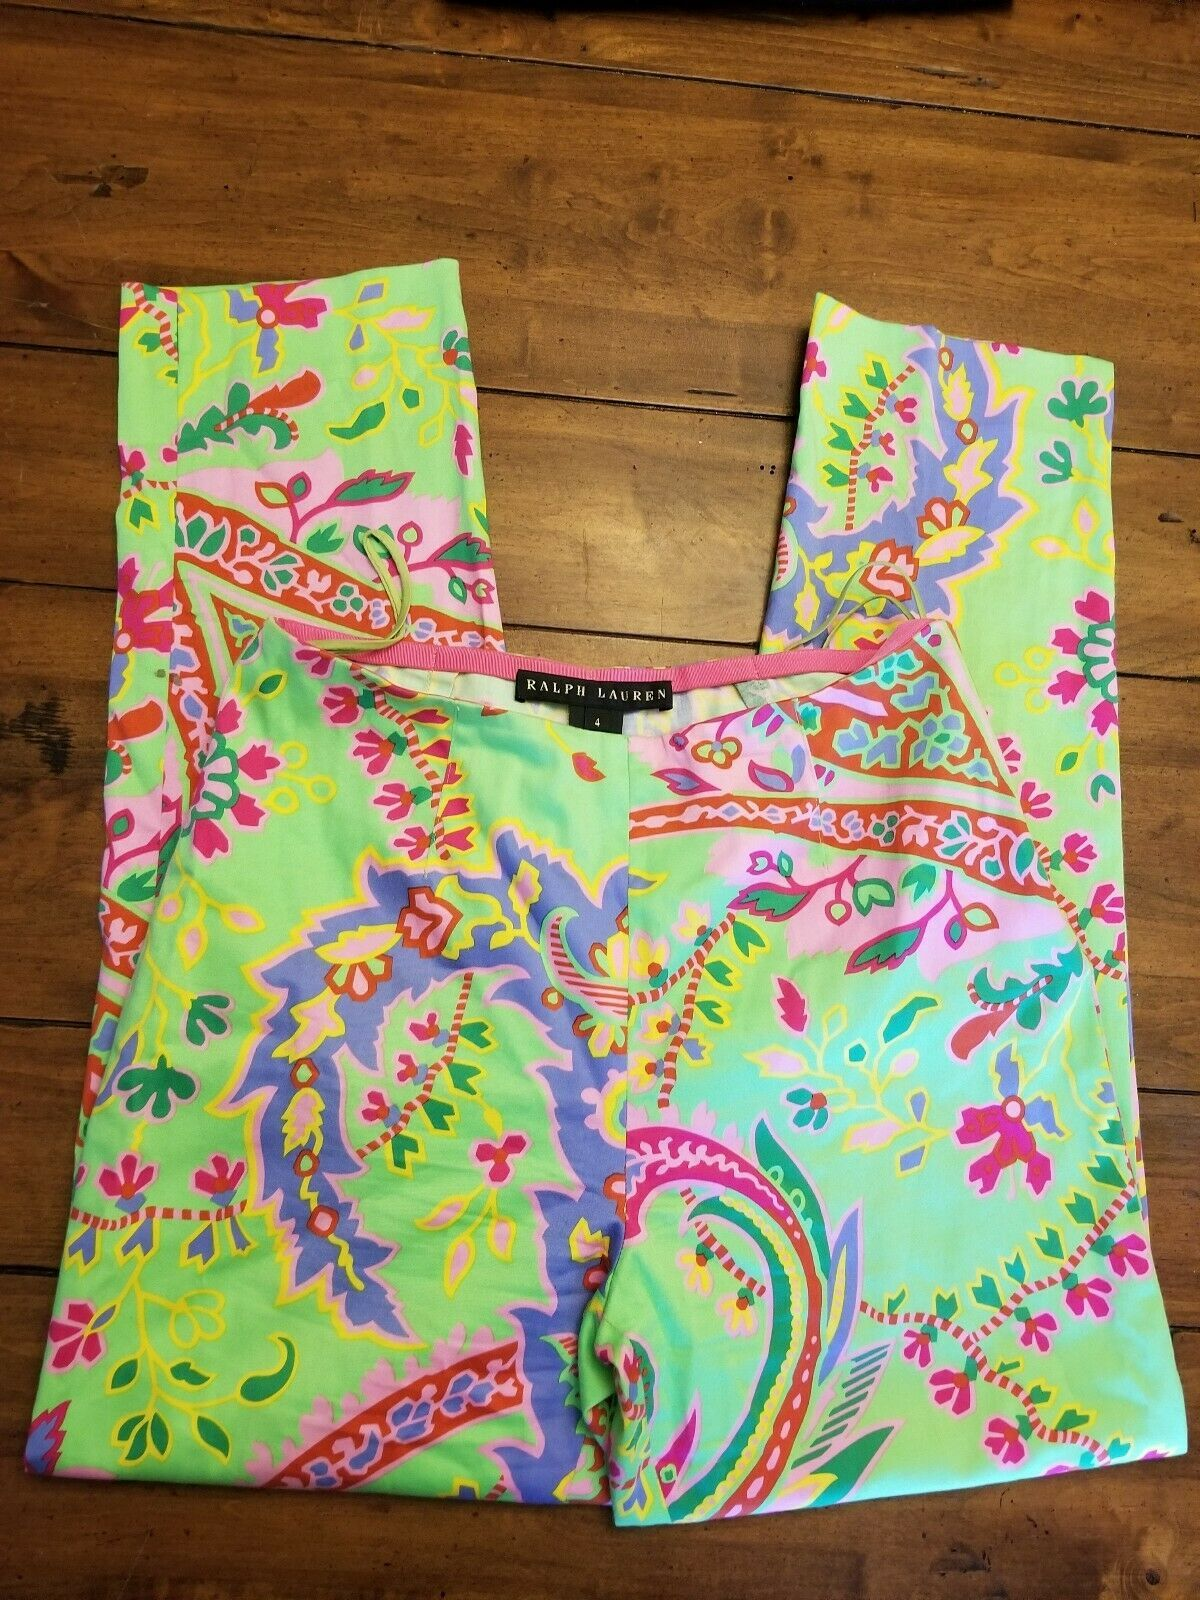 Ralph Lauren Black Label Sz 4 Cotton Floral Straight Leg Dress Pants Green Pink